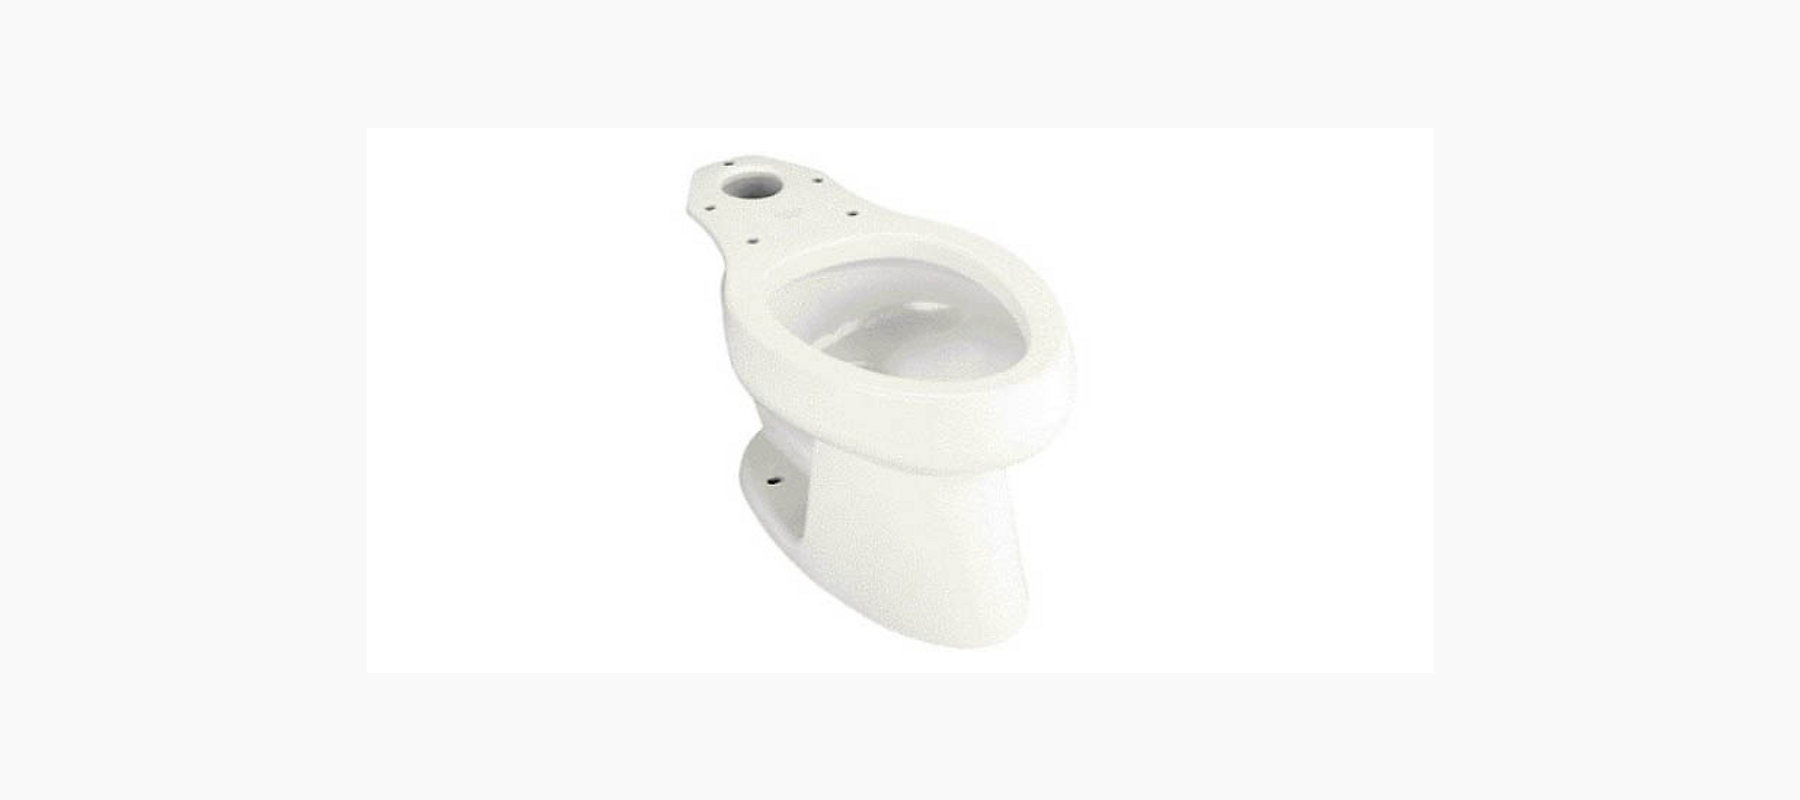 Kohler K 4276 L Wellworth Elongated Bowl With Bedpan Lugs